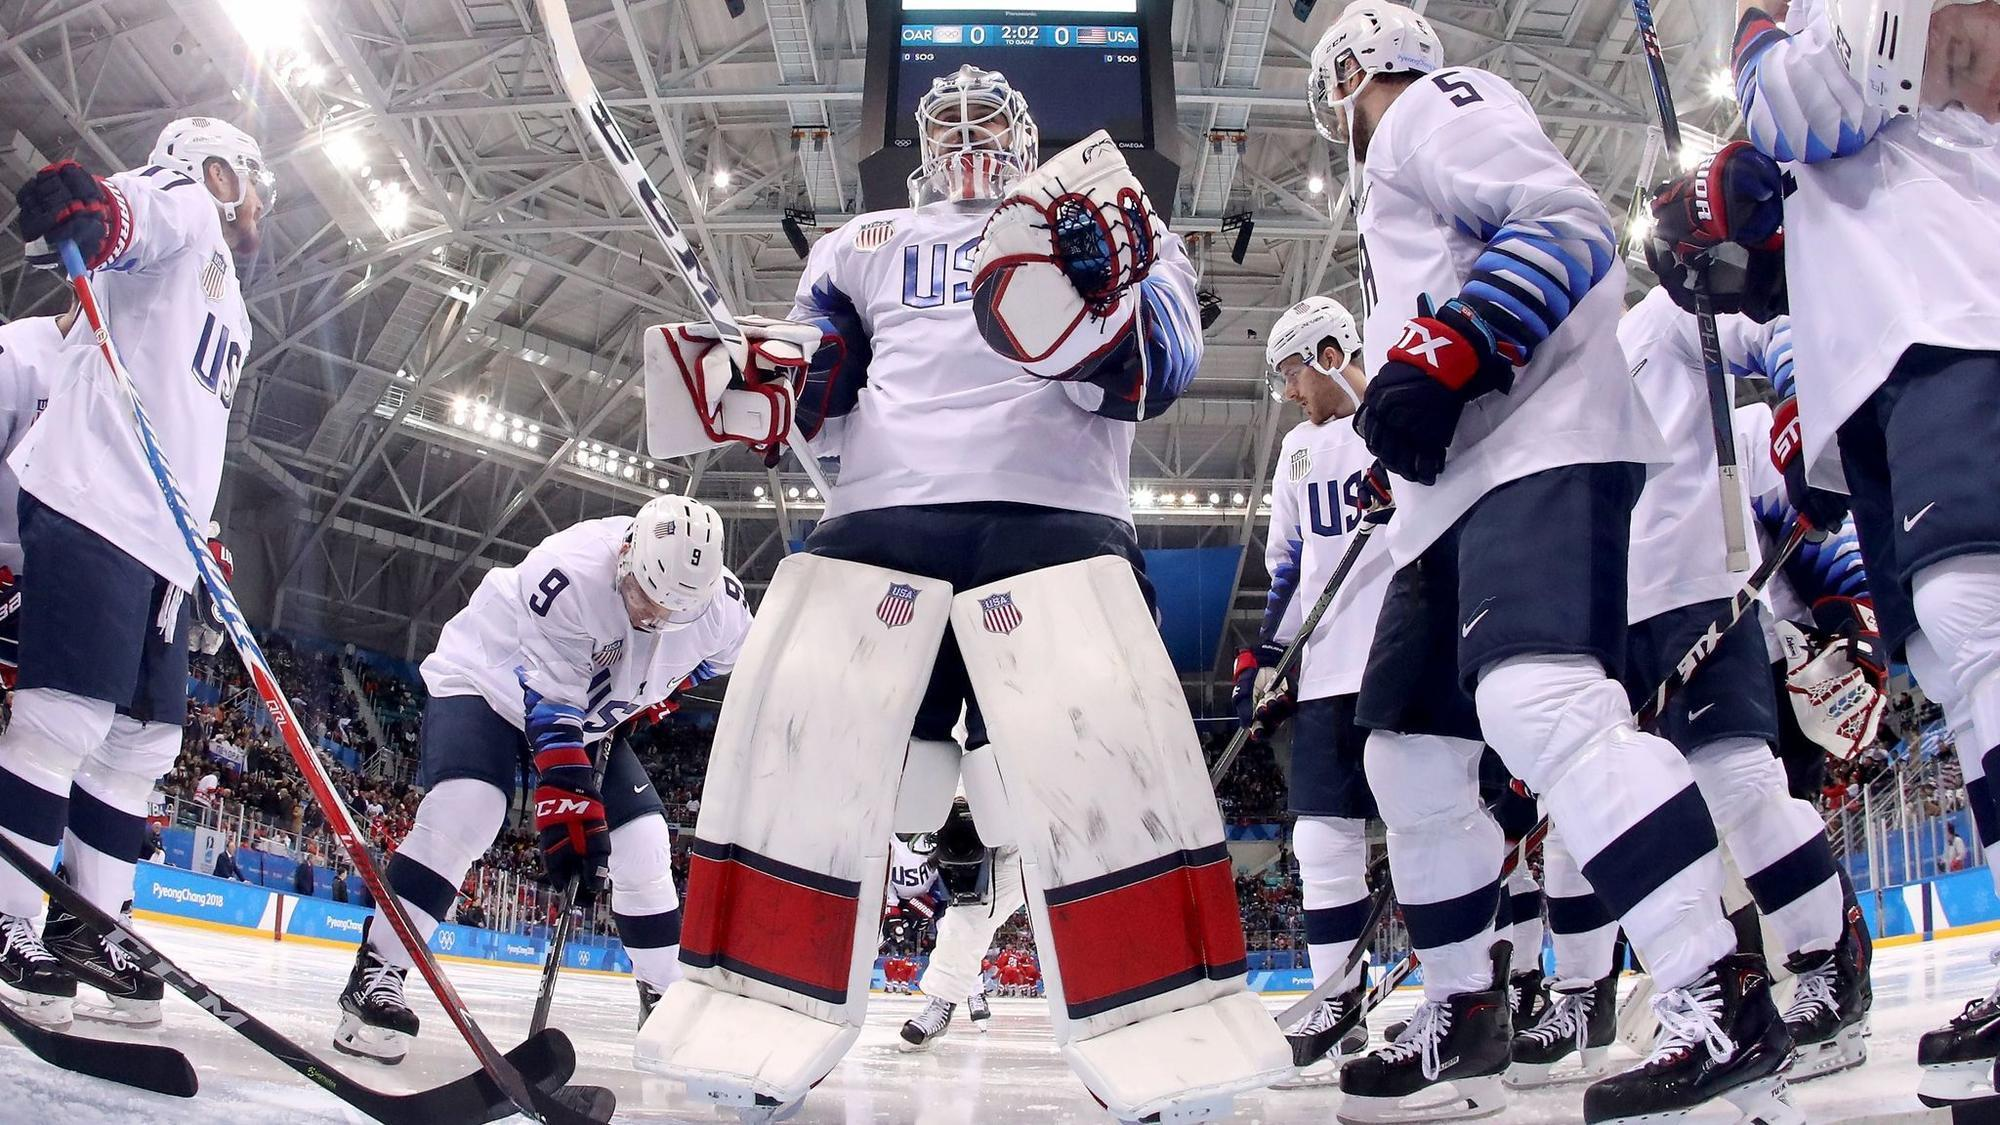 U.S. to play Slovakia in Olympic hockey qualification playoff